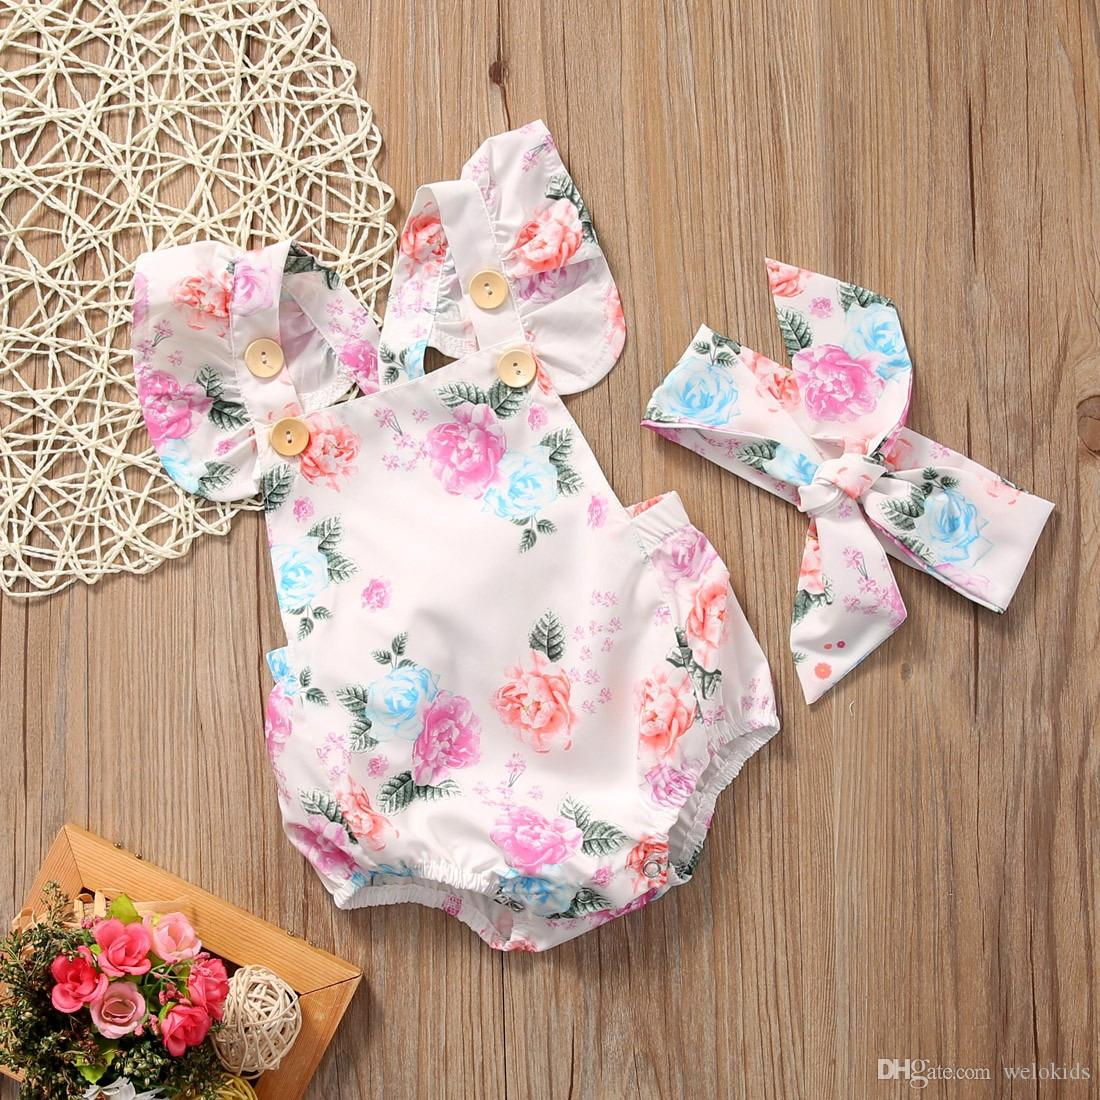 bbc1124a2c4a 2019 New Pretty Girl Summer Jumpsuit Flower Romper Baby Child Girl ...